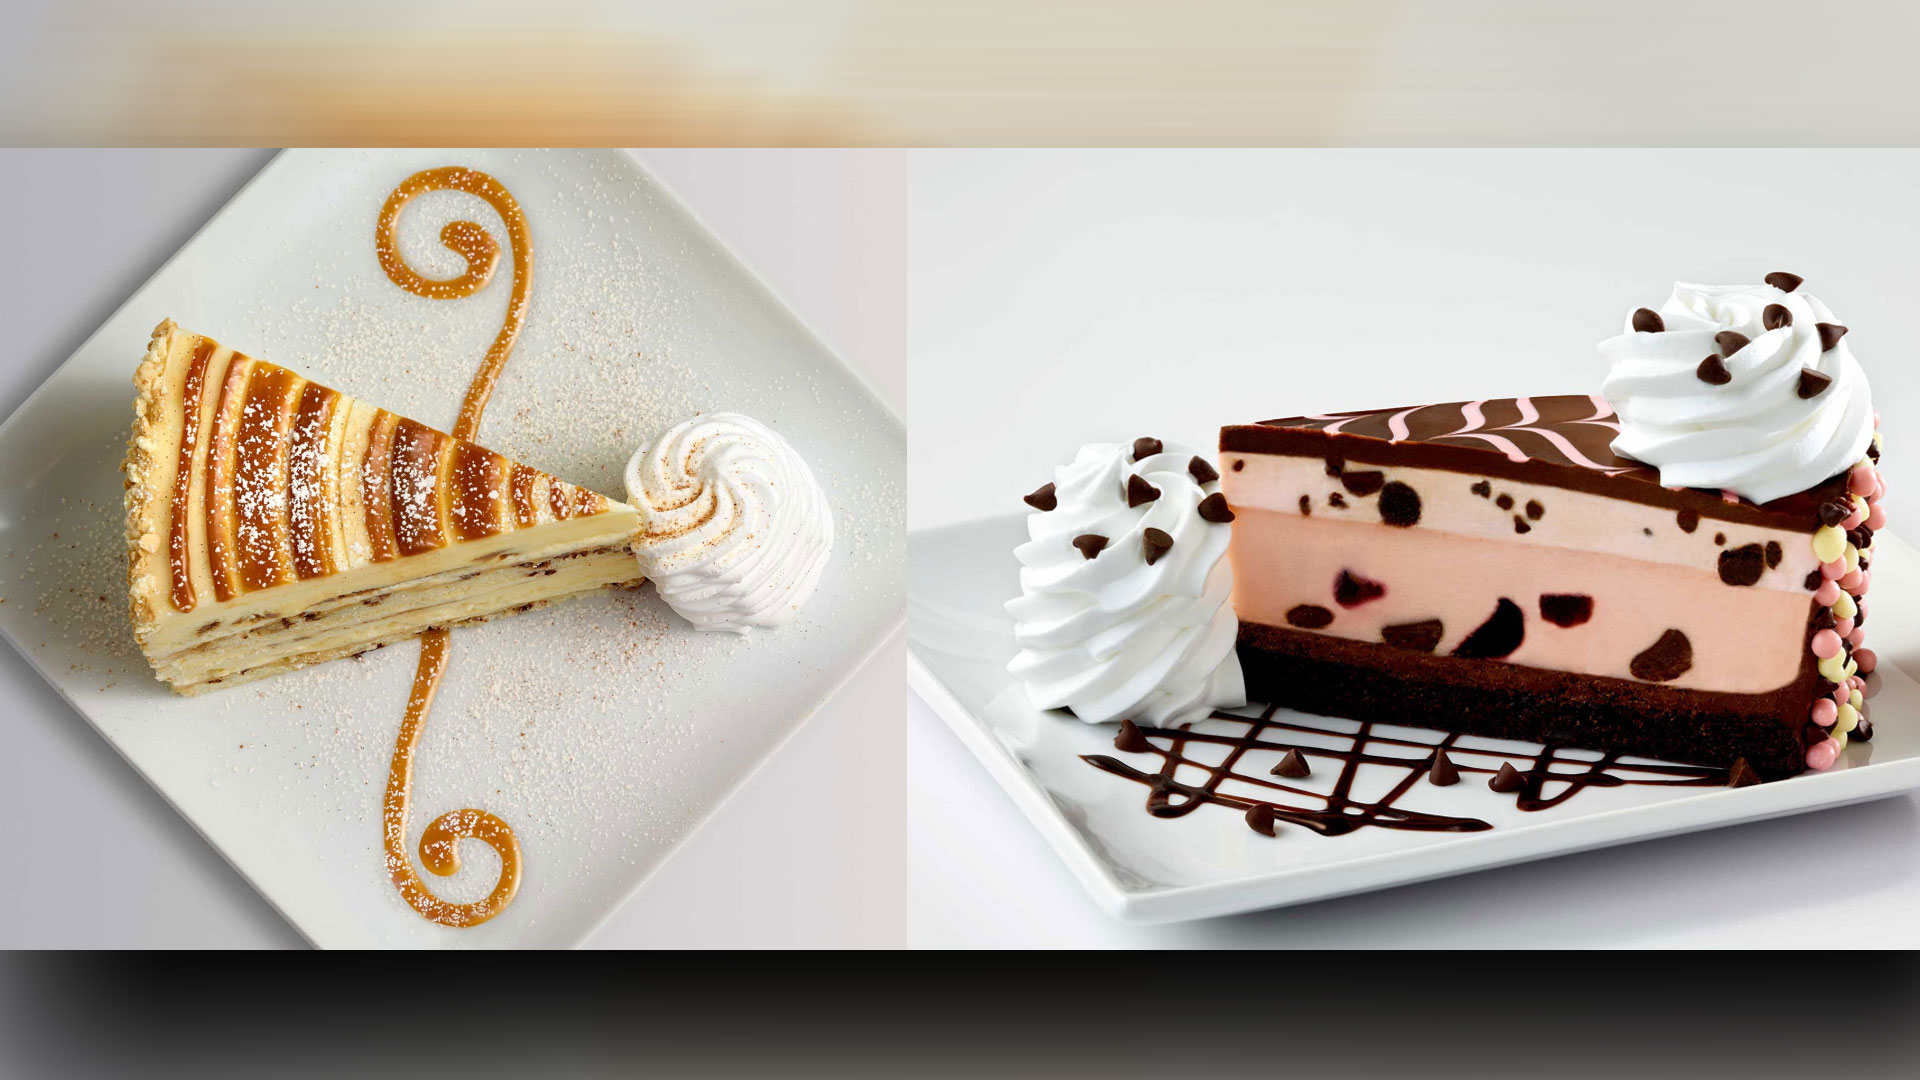 Sensational The Cheesecake Factory Unveils Two New Cheesecake Flavors For Funny Birthday Cards Online Barepcheapnameinfo